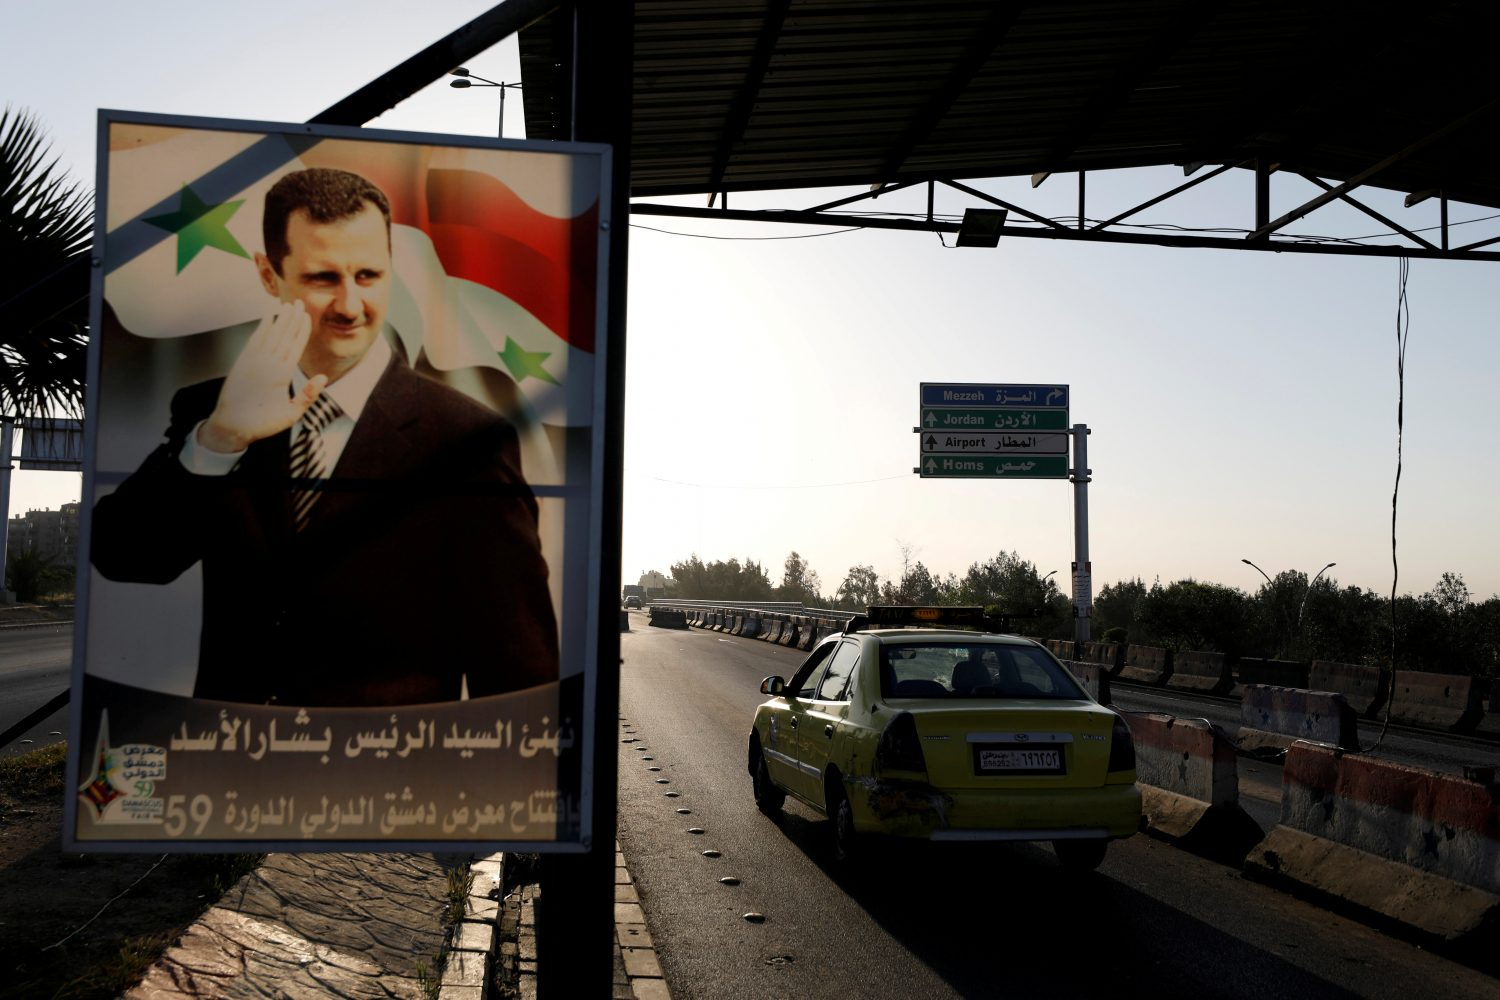 FILE PHOTO: A poster of Syrian President Bashar al-Assad is seen on the main road to the airport in Damascus, Syria April 14, 2018. REUTERS/Omar Sanadiki/File Photo